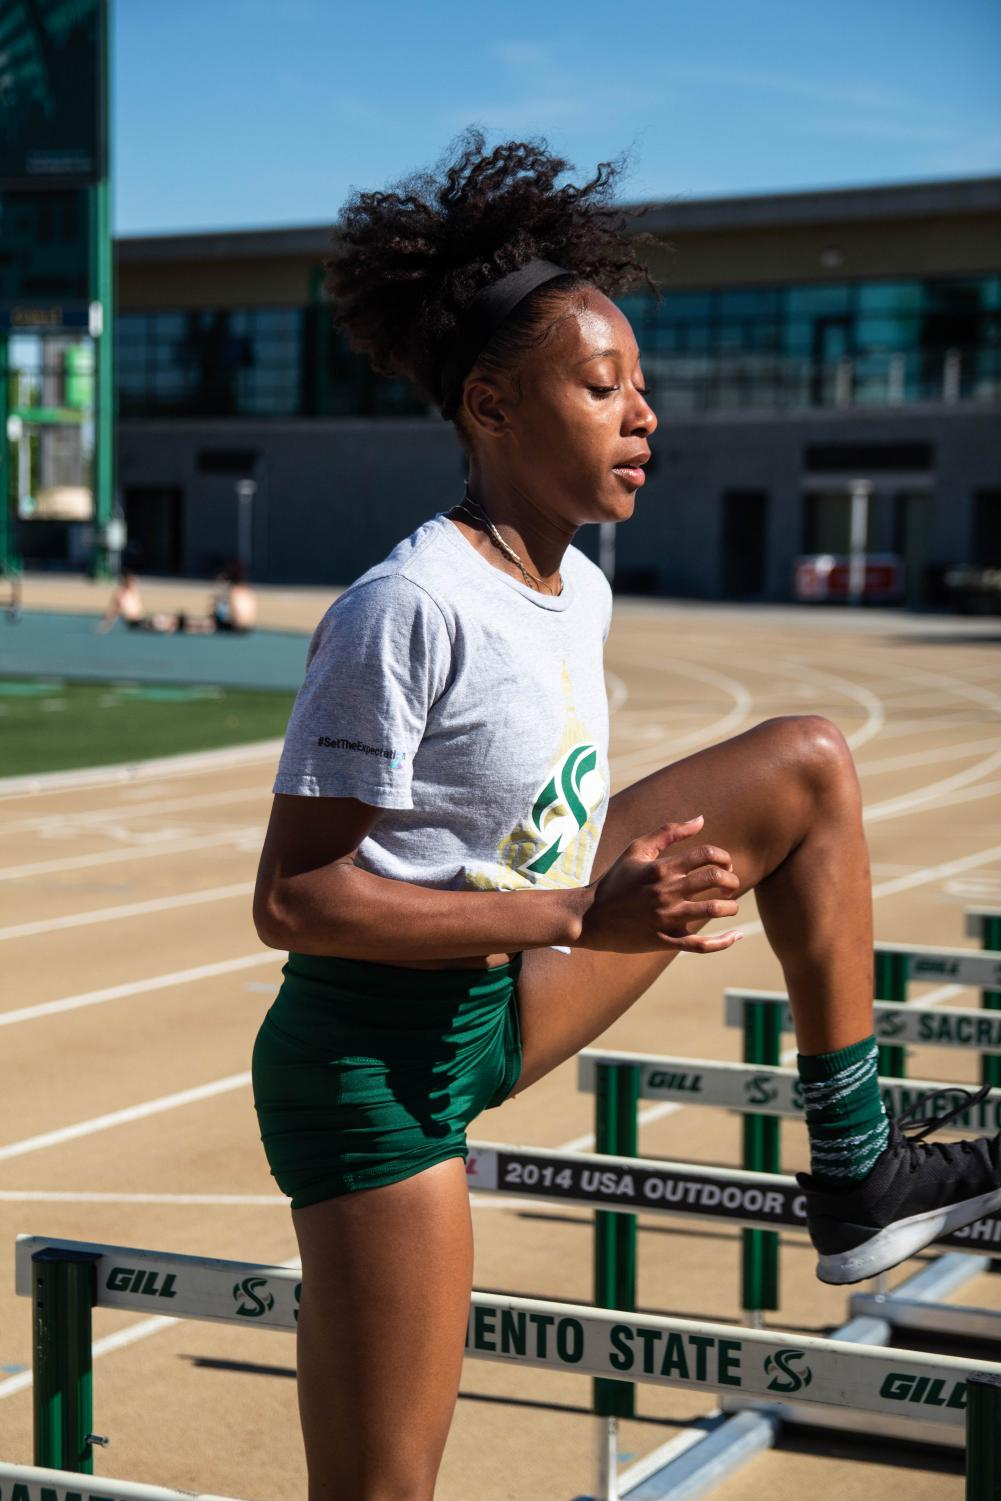 Track+athlete+Khala+Clarke+does+hurdle+drills+on+the+track.+Clarke+is+a+400-hurdler+with+an+outdoor+best+of+1%3A05.